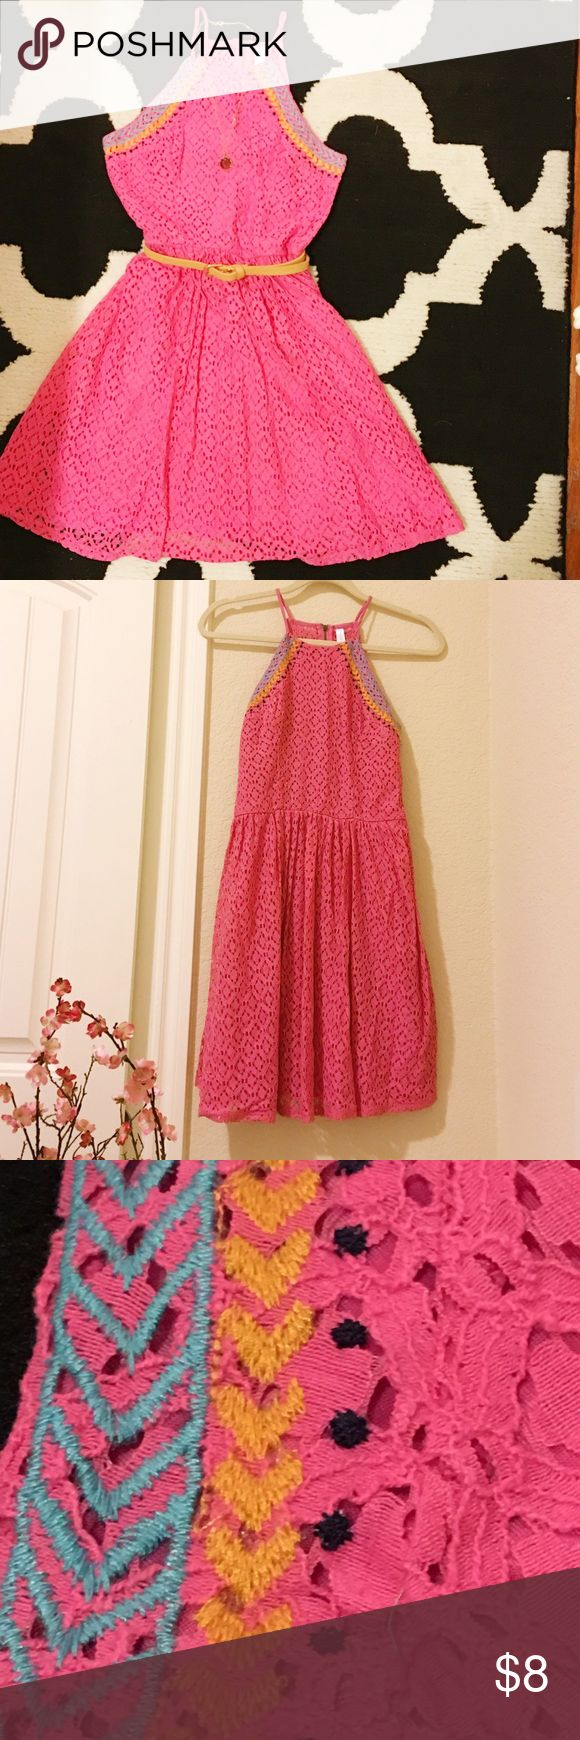 ⚡️Hot Pink Sundress Hot pink sundress from target. Material is pink lace/crochet and there is stitching on the neckline. The shape of the neckline is similar to that of a halter (although this is not a halter). ✨Never worn!✨ Comes to just below mid-thigh. Xhilaration Dresses